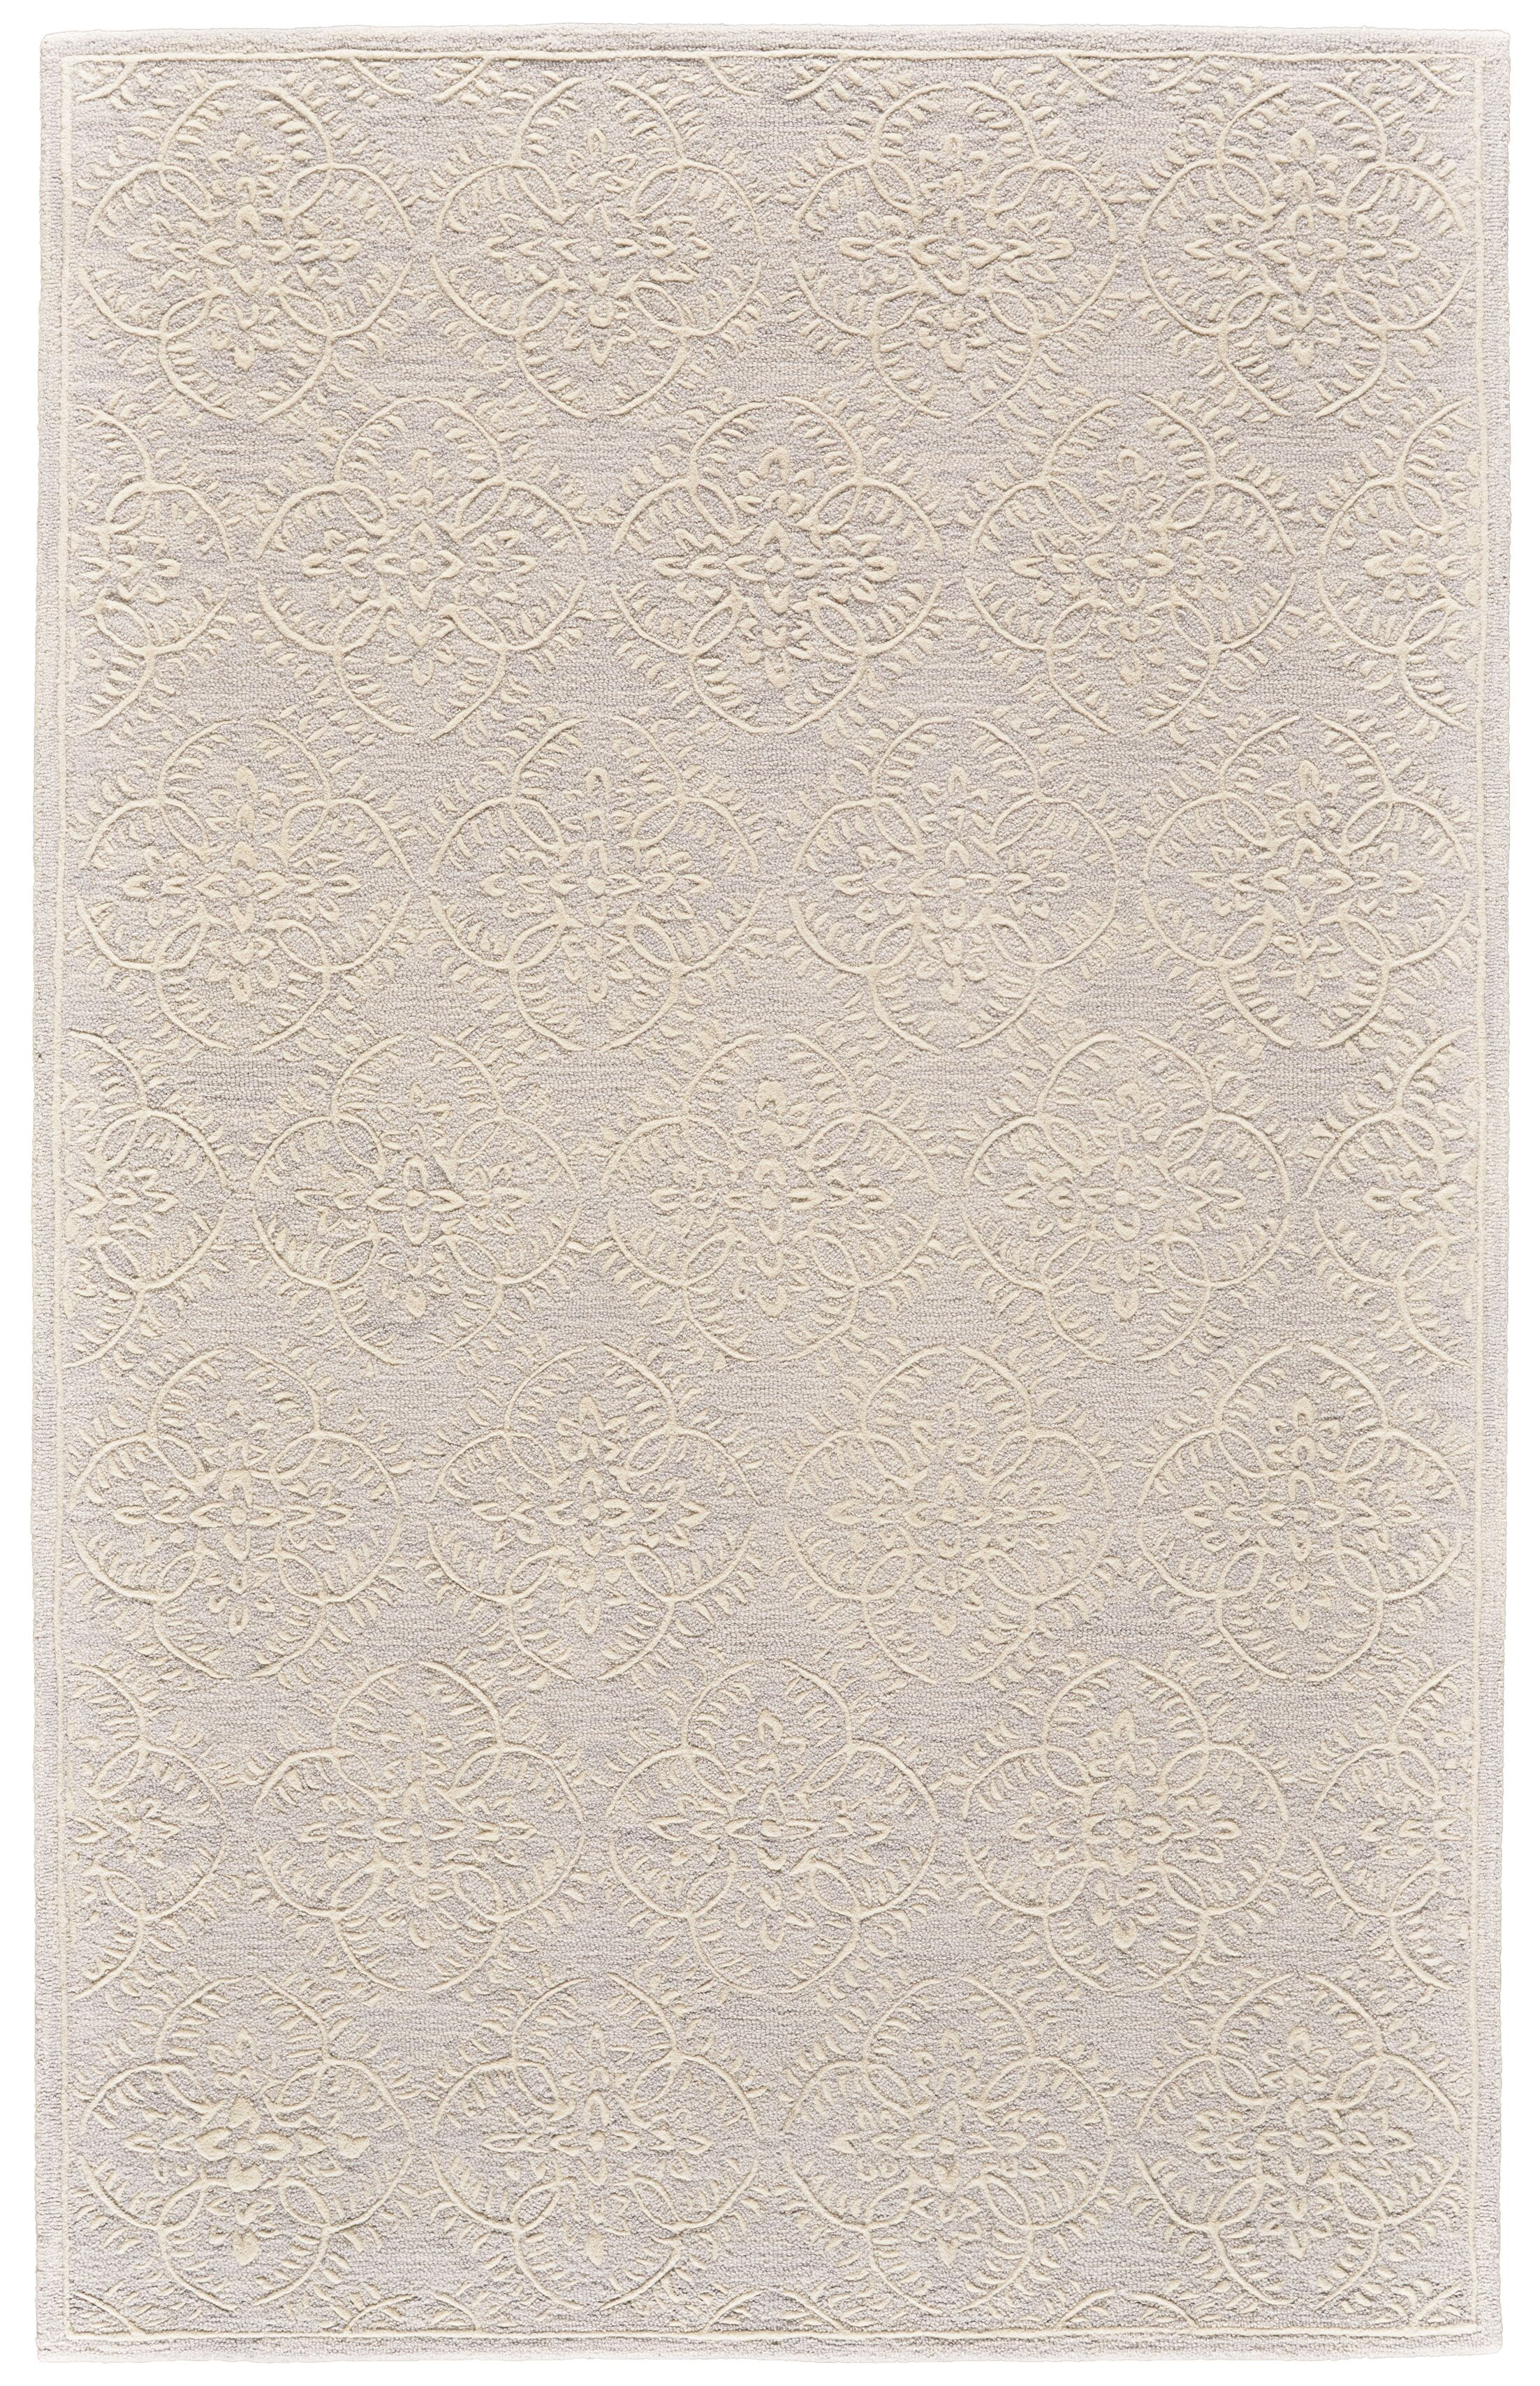 Griego Hand-Tufted Wool Light Gray/Ivory Area Rug Rug Size: Rectangle 3'6